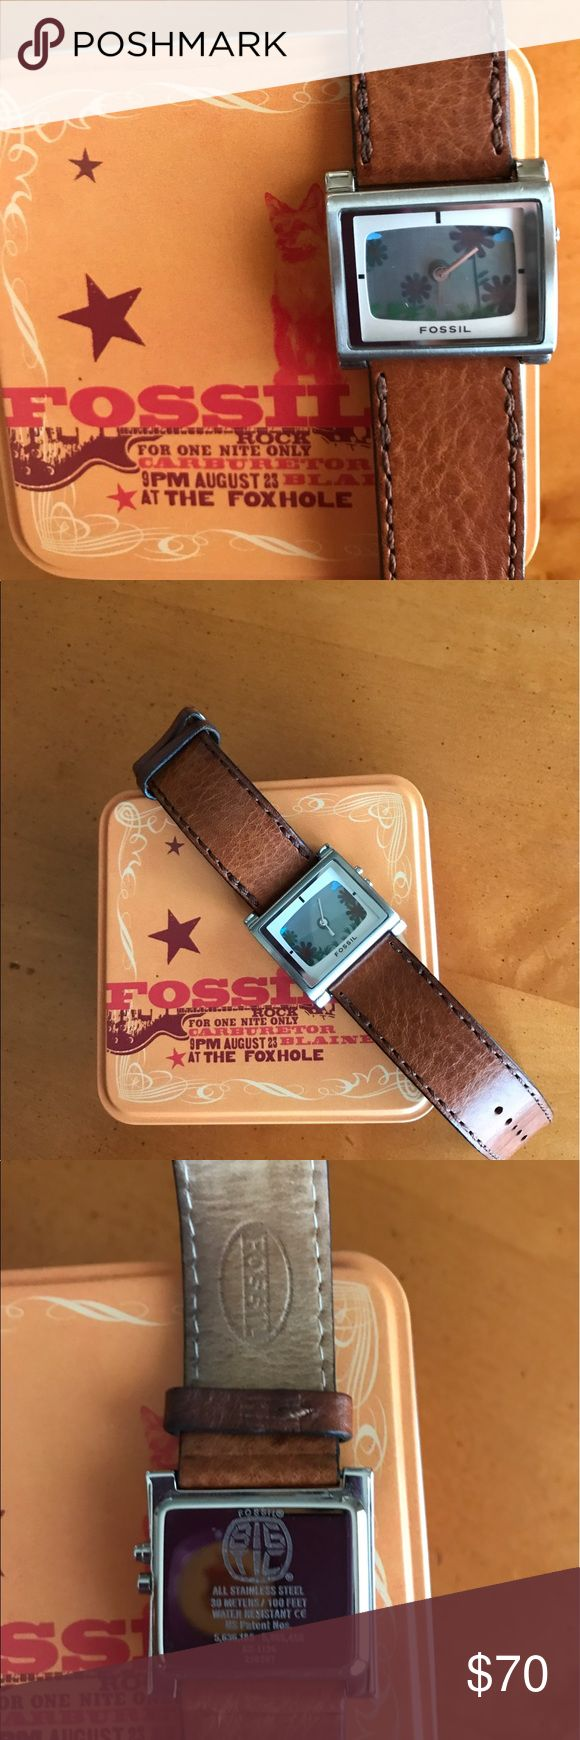 Fossil BIG TIC Flashing 🌸Flowers🌺Leather Watch Pre-loved Ladies Fossil Big Tic ES-1126 Flashing 🌸Flowers 🌺 Leather Watch. Very rare piece, takes two batteries. Just purchased and replaced batteries, watch works great! Fossil Accessories Watches